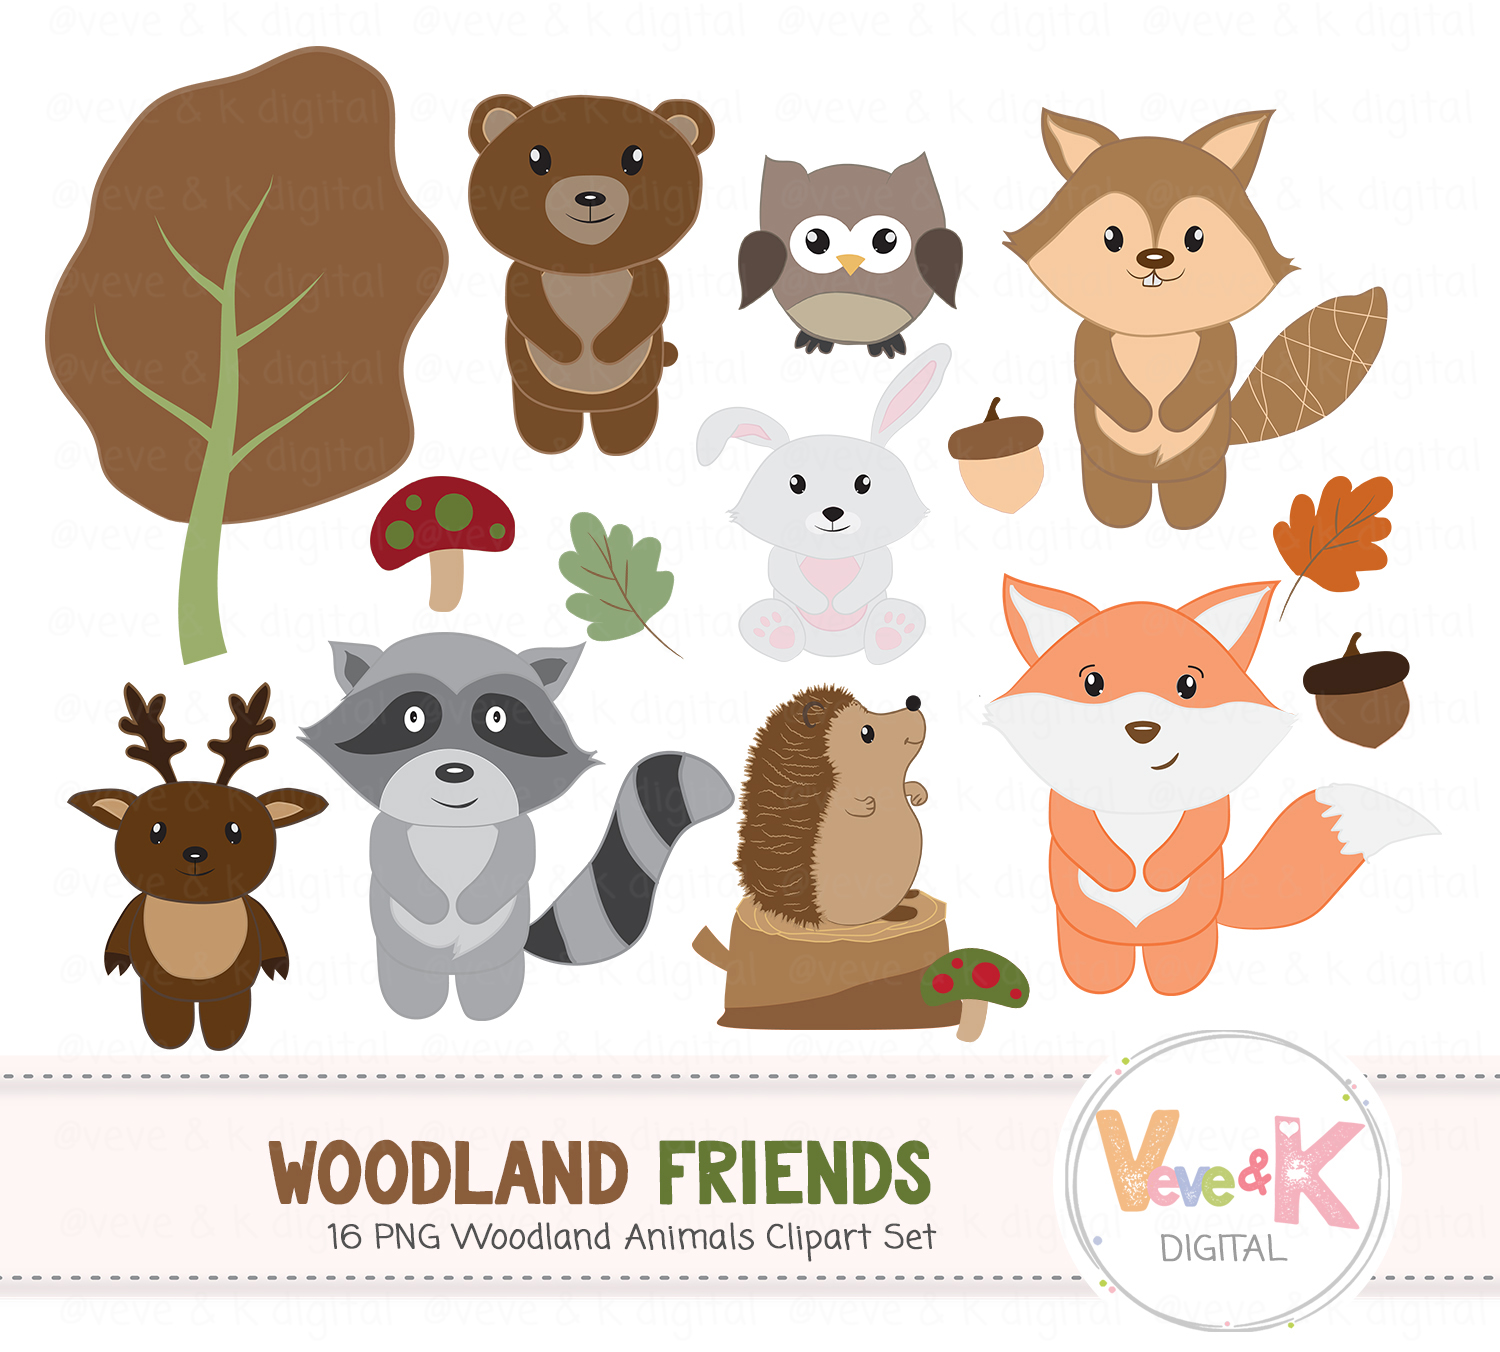 Woodland Animals Clipart Set, Woodland Creature Clipart, Forest Animals  Clipart, Woodland Critters, Fox racoon deer, Forest Critters.